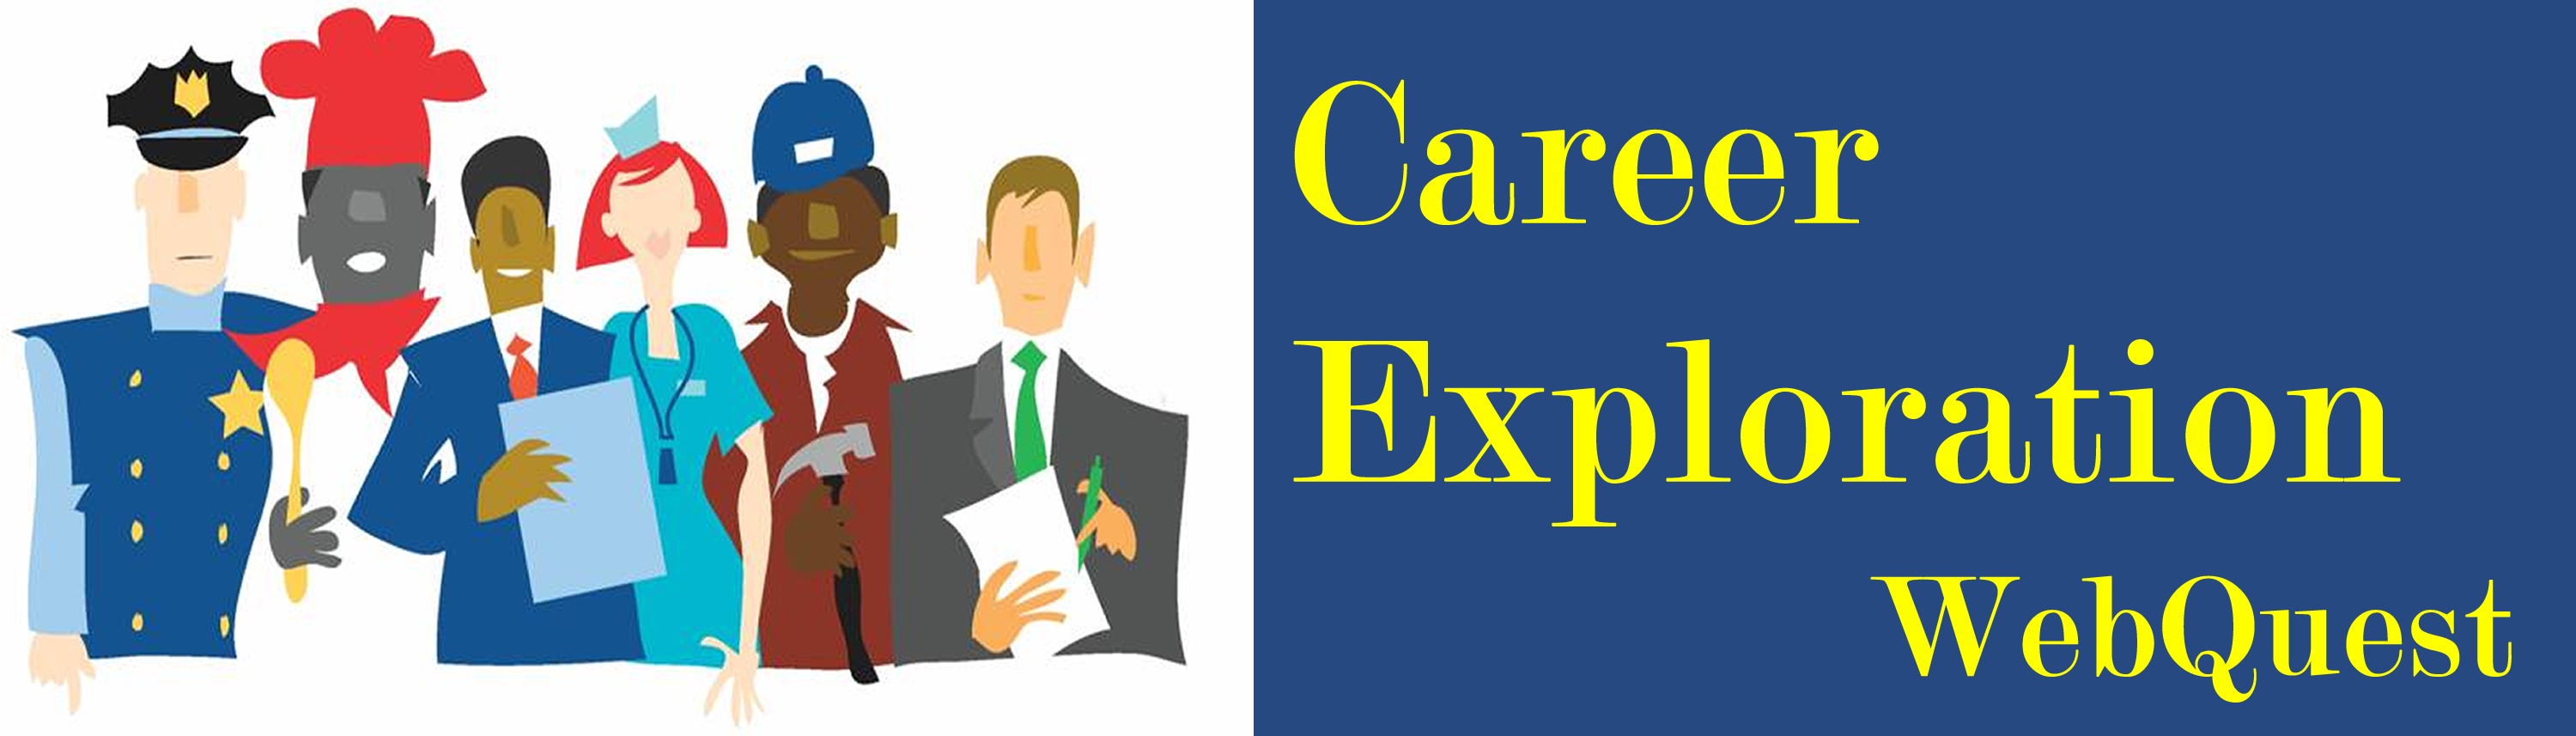 career exploration webquest teacher page